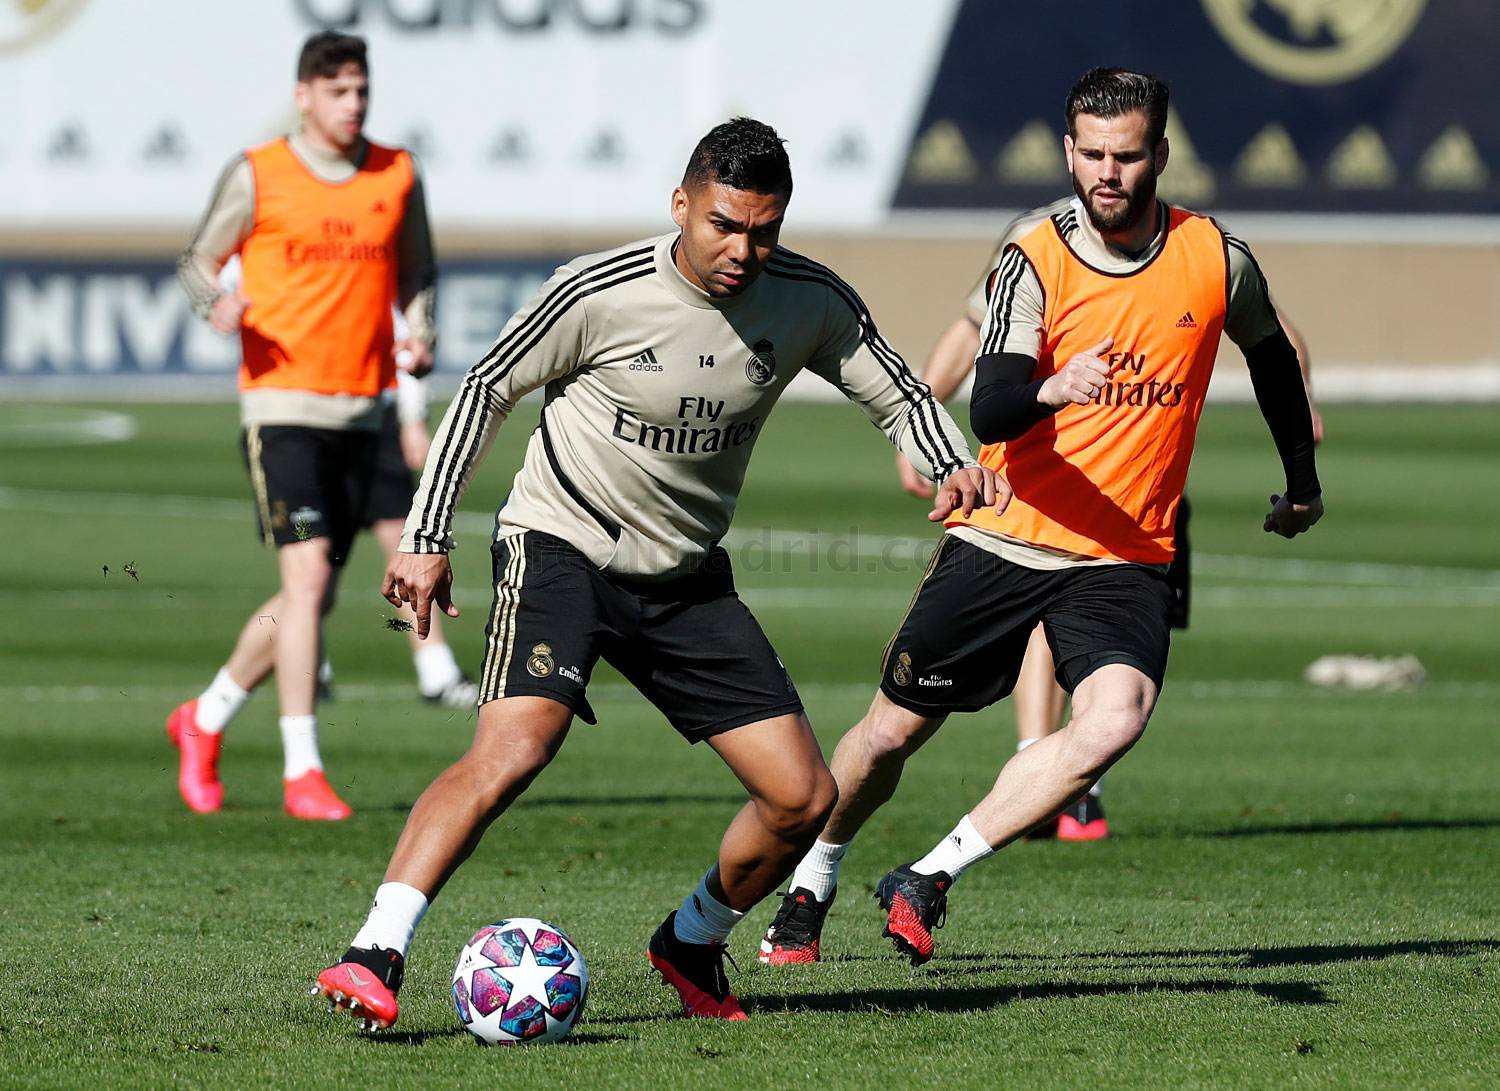 Real Madrid - Entrenamiento del Real Madrid  - 24-02-2020